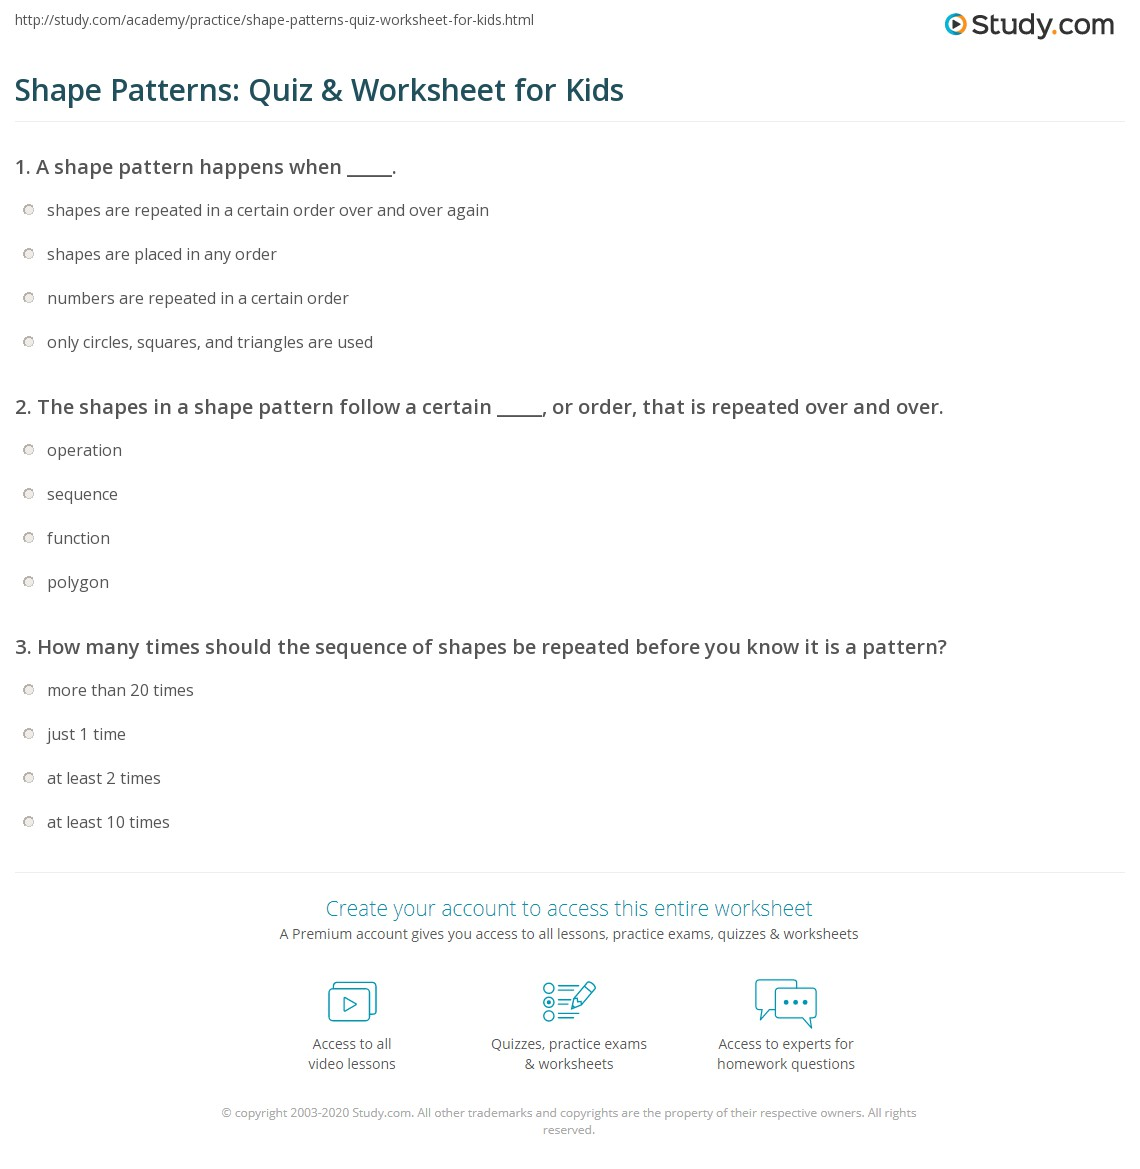 Shape Patterns Quiz & Worksheet for Kids